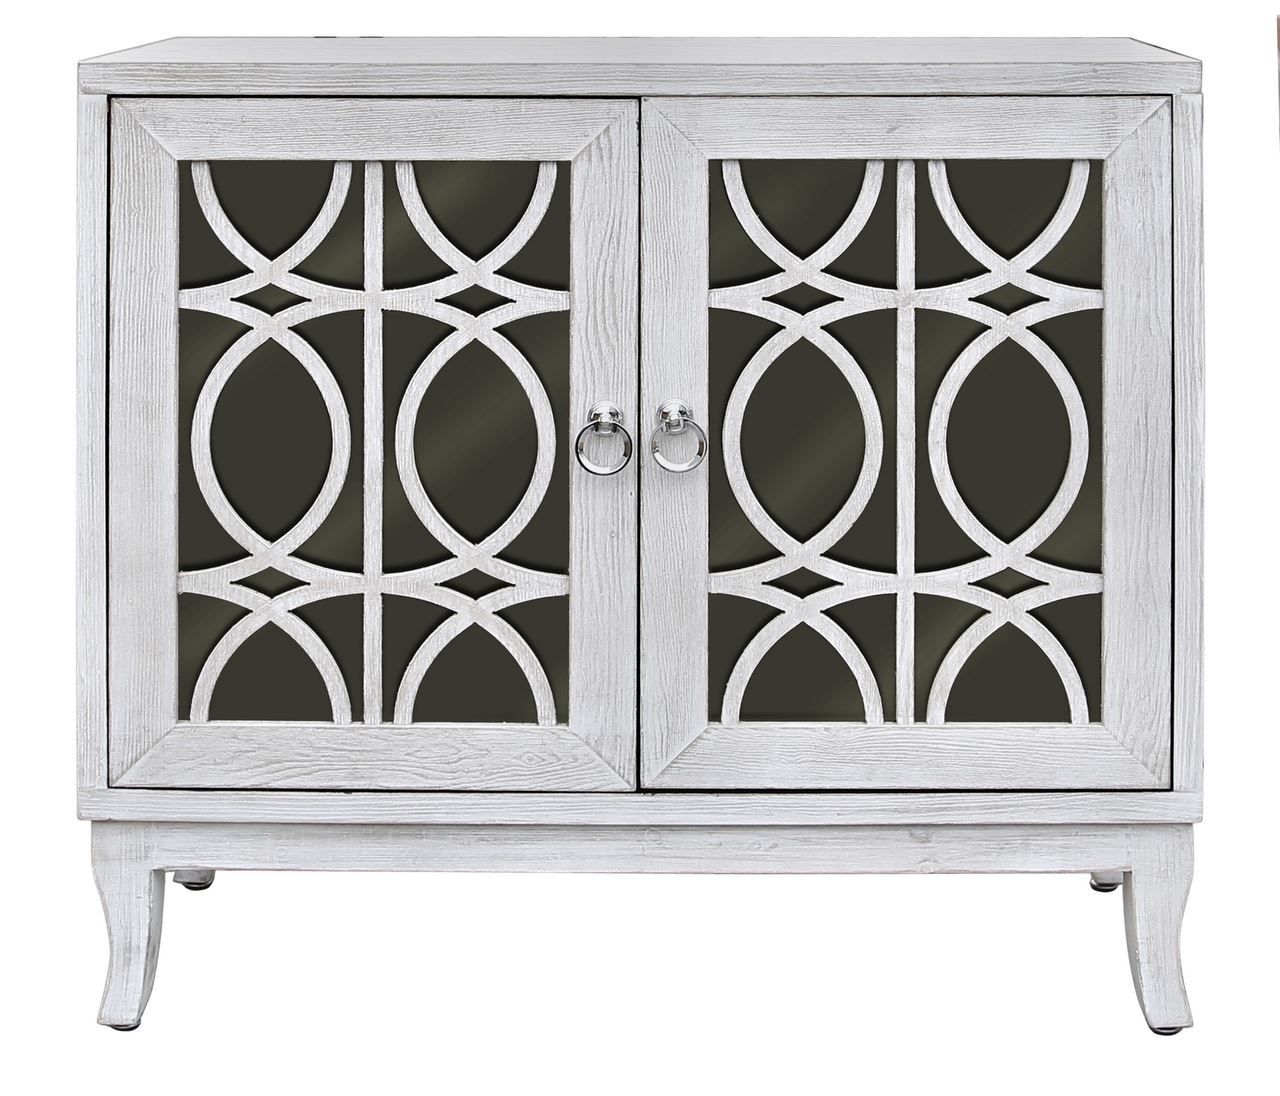 Aspen Washed Ash And Black 2 Door Sideboard | Bigliving throughout White Wash 2-Door Sideboards (Image 5 of 30)